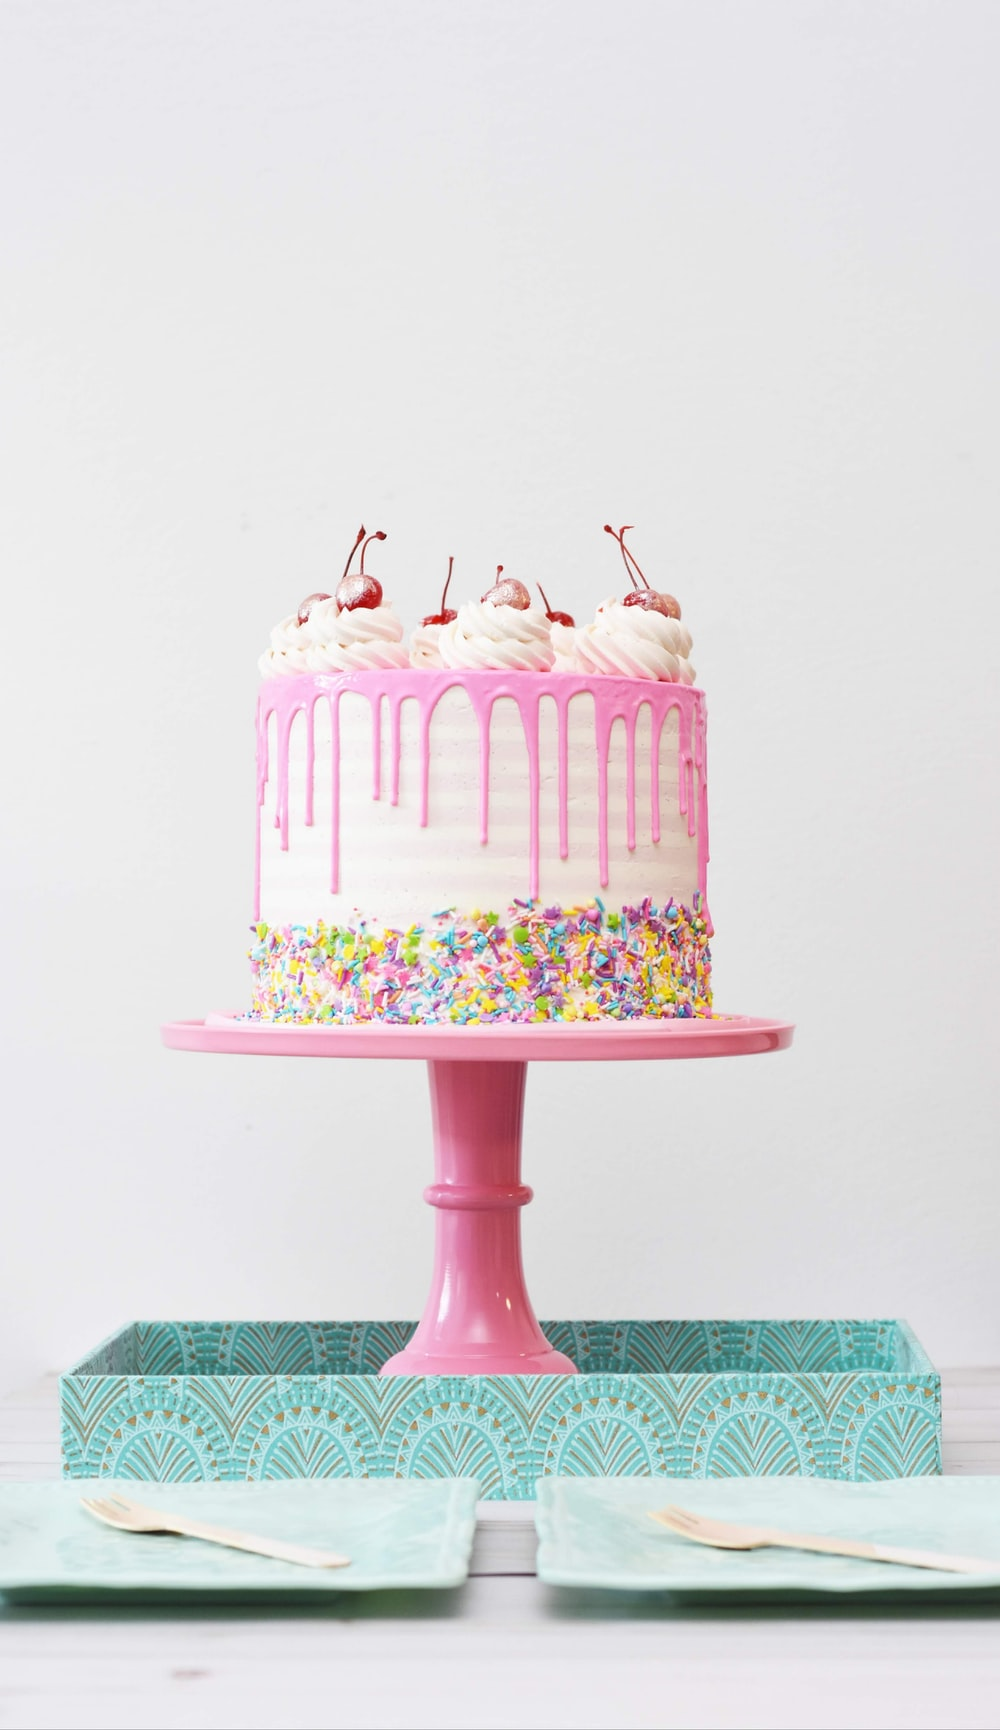 Swell Fondant Cake With Stand Photo Free Birthday Cake Image On Unsplash Funny Birthday Cards Online Inifodamsfinfo